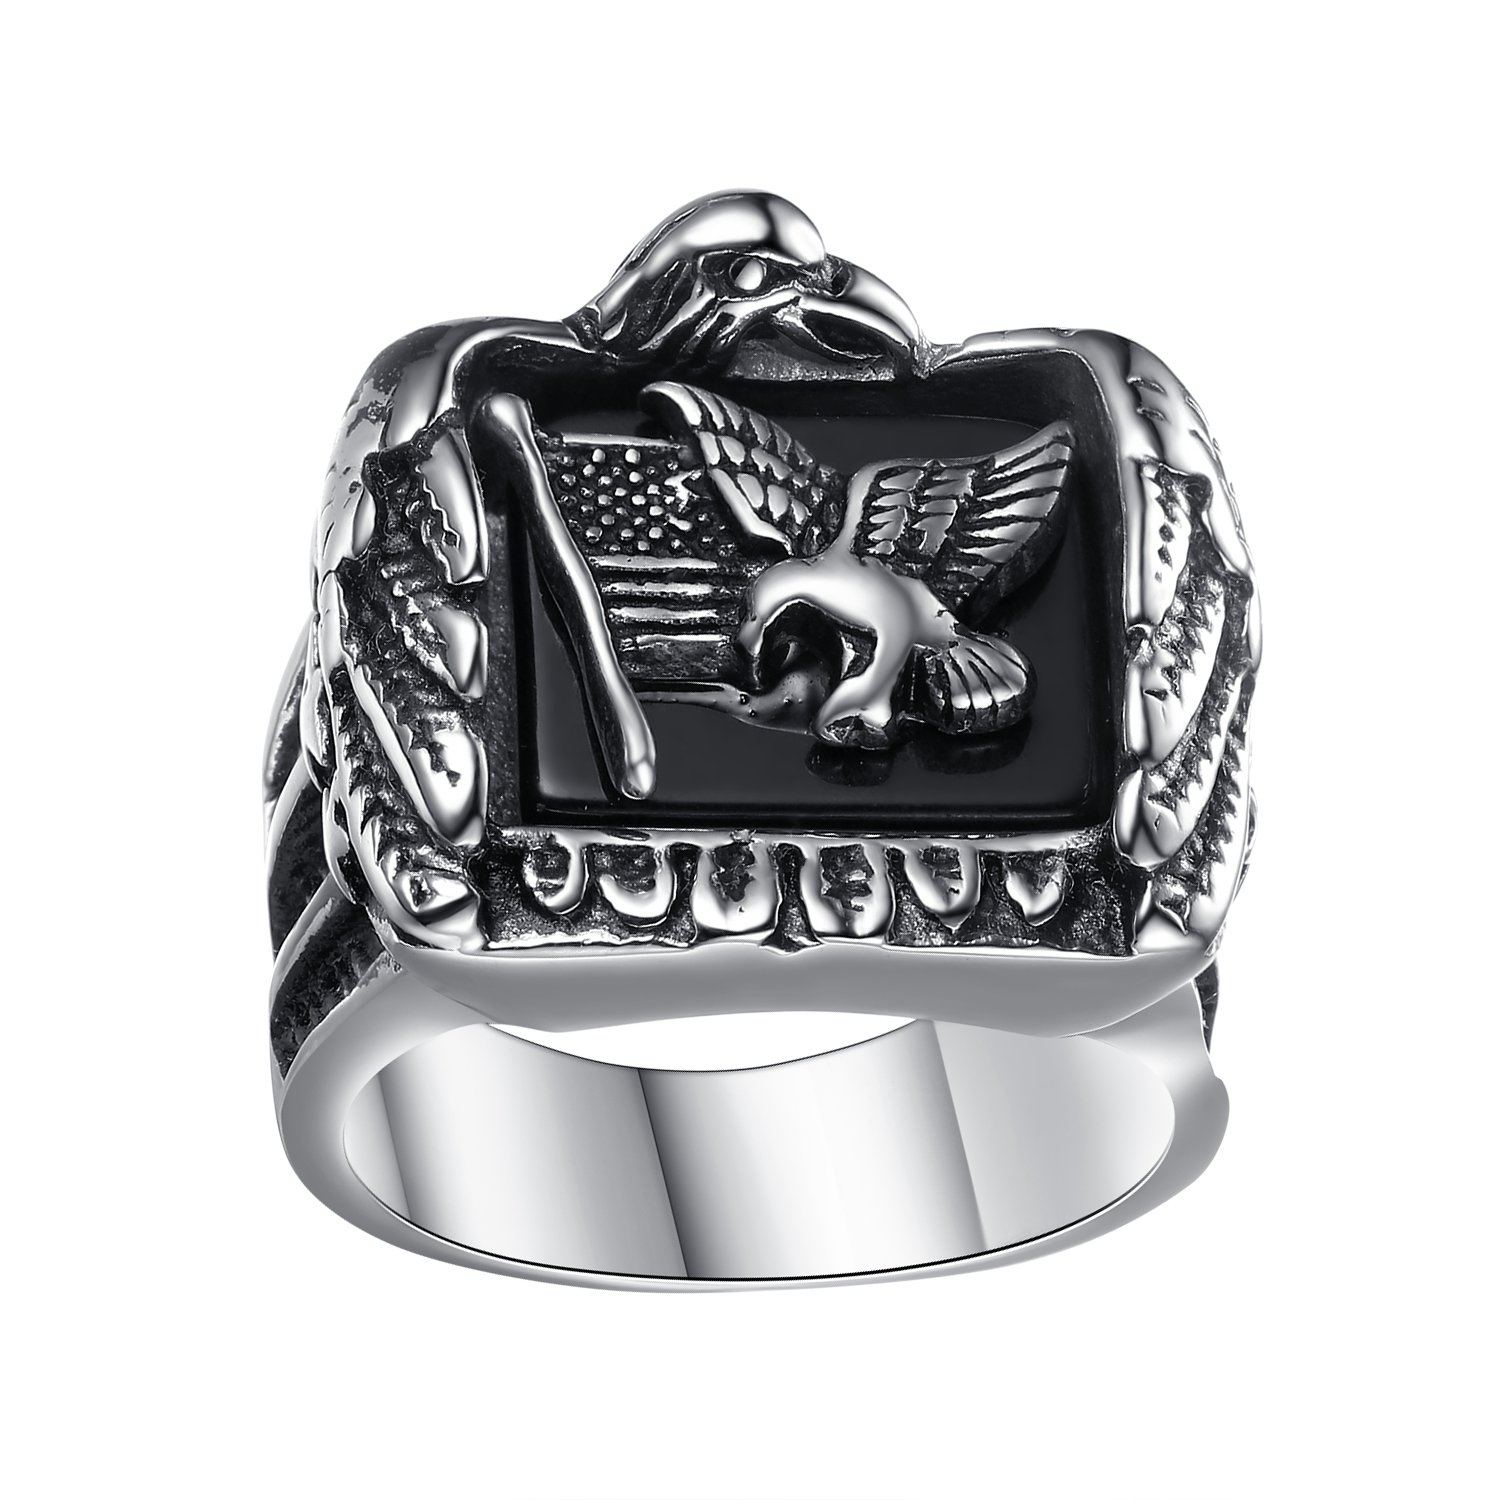 LineAve Men's Stainless Steel American Flag and Eagle Ring, Size 13, 7a5012s13